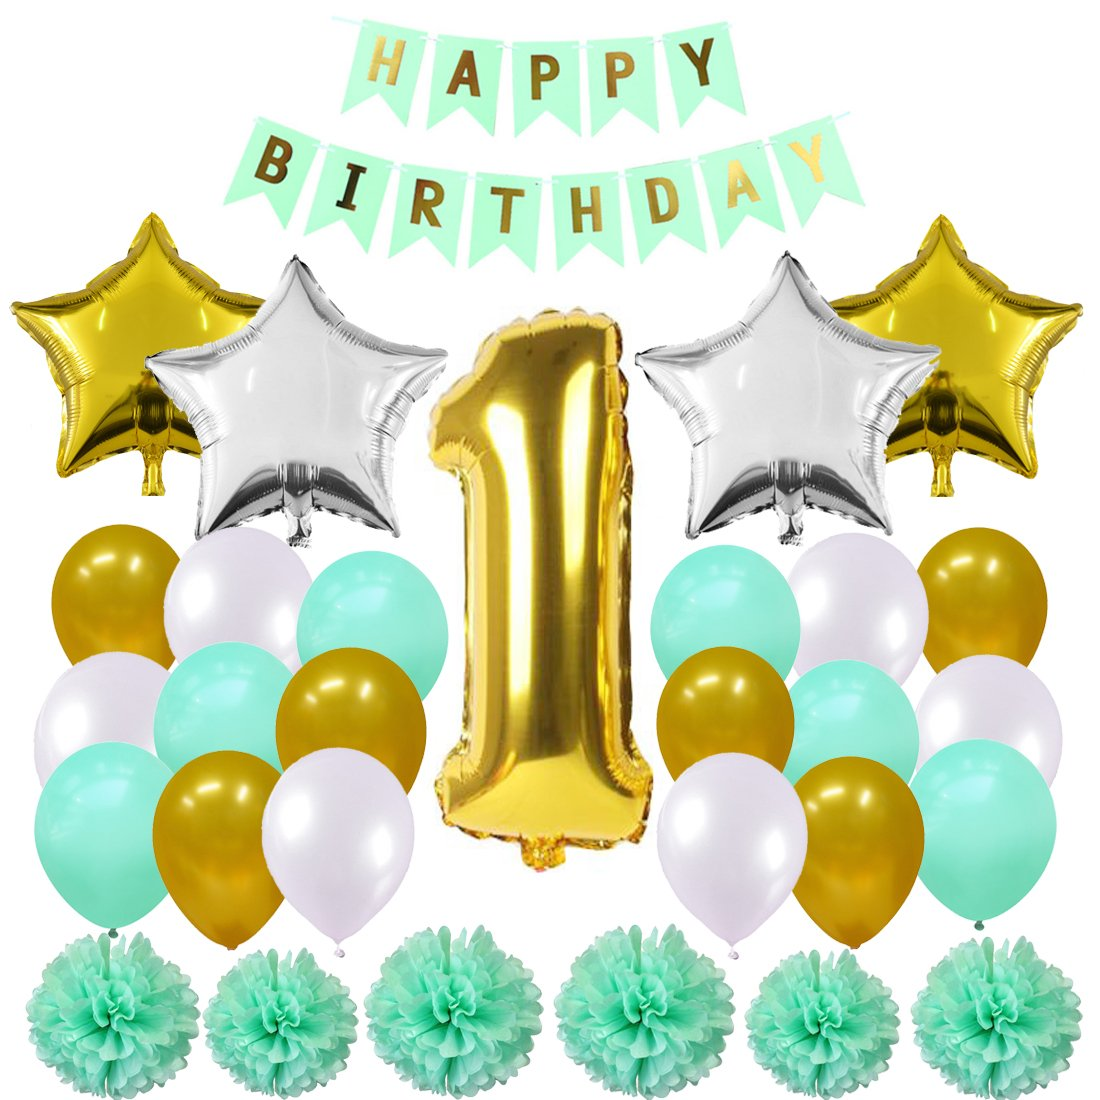 Amazon Maticr Sweet Baby Boy First Birthday Decorations Kit 1st Balloons Banner Party Supplies Toys Games